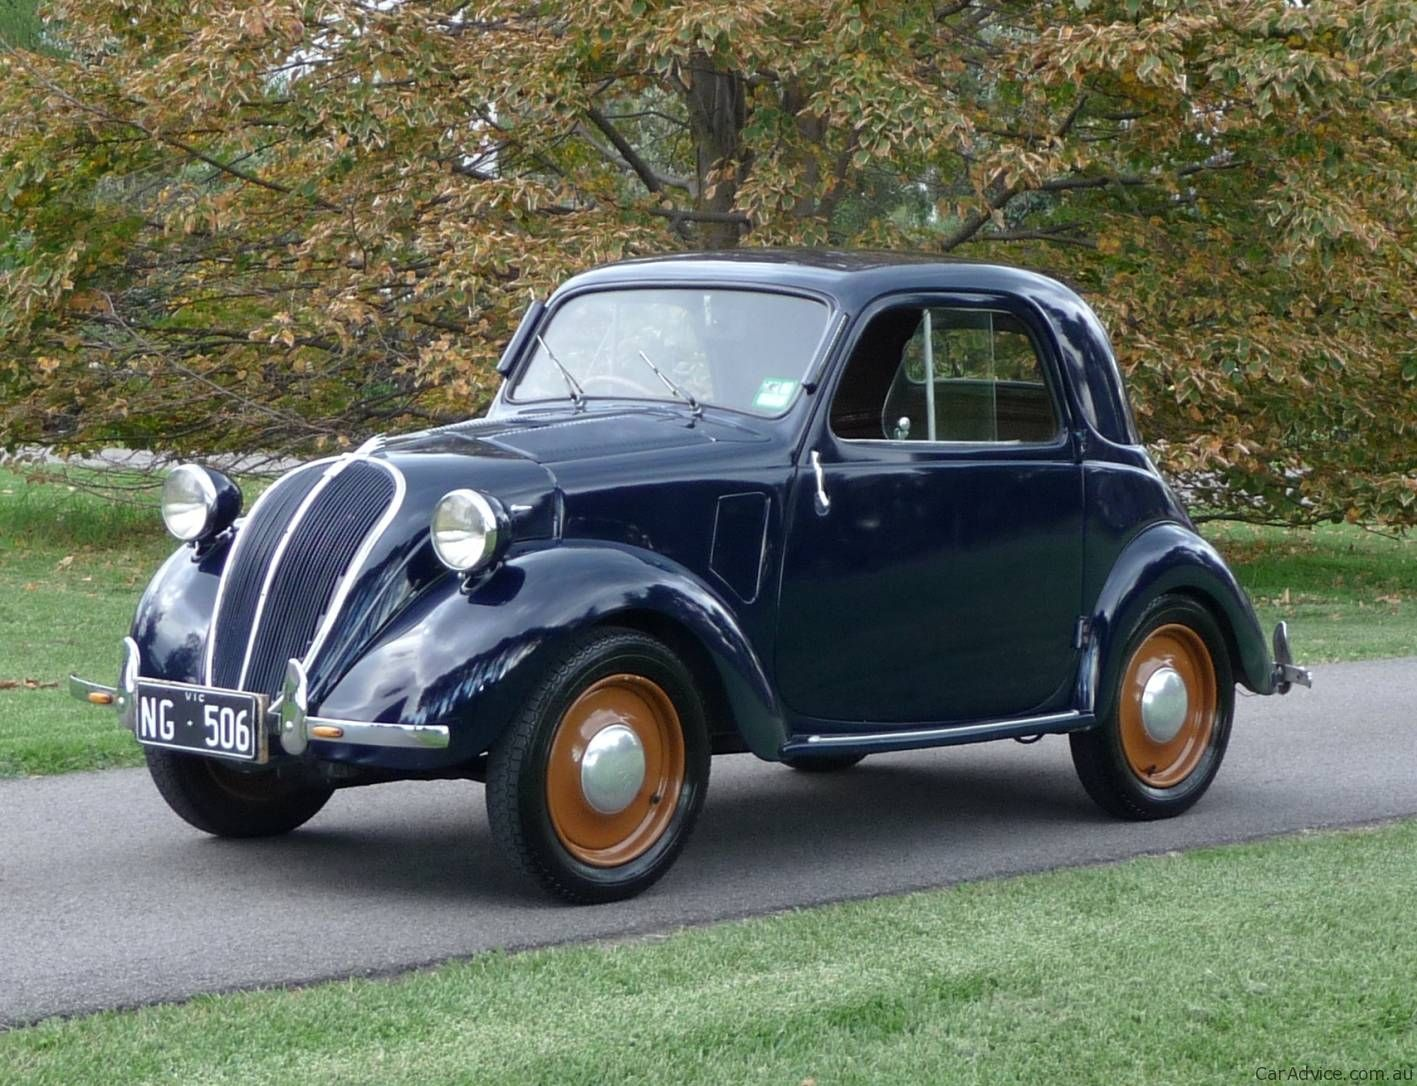 FIAT Topolino. have been asking my parents for this car since I was a wee  lass of 10! it is about time no?